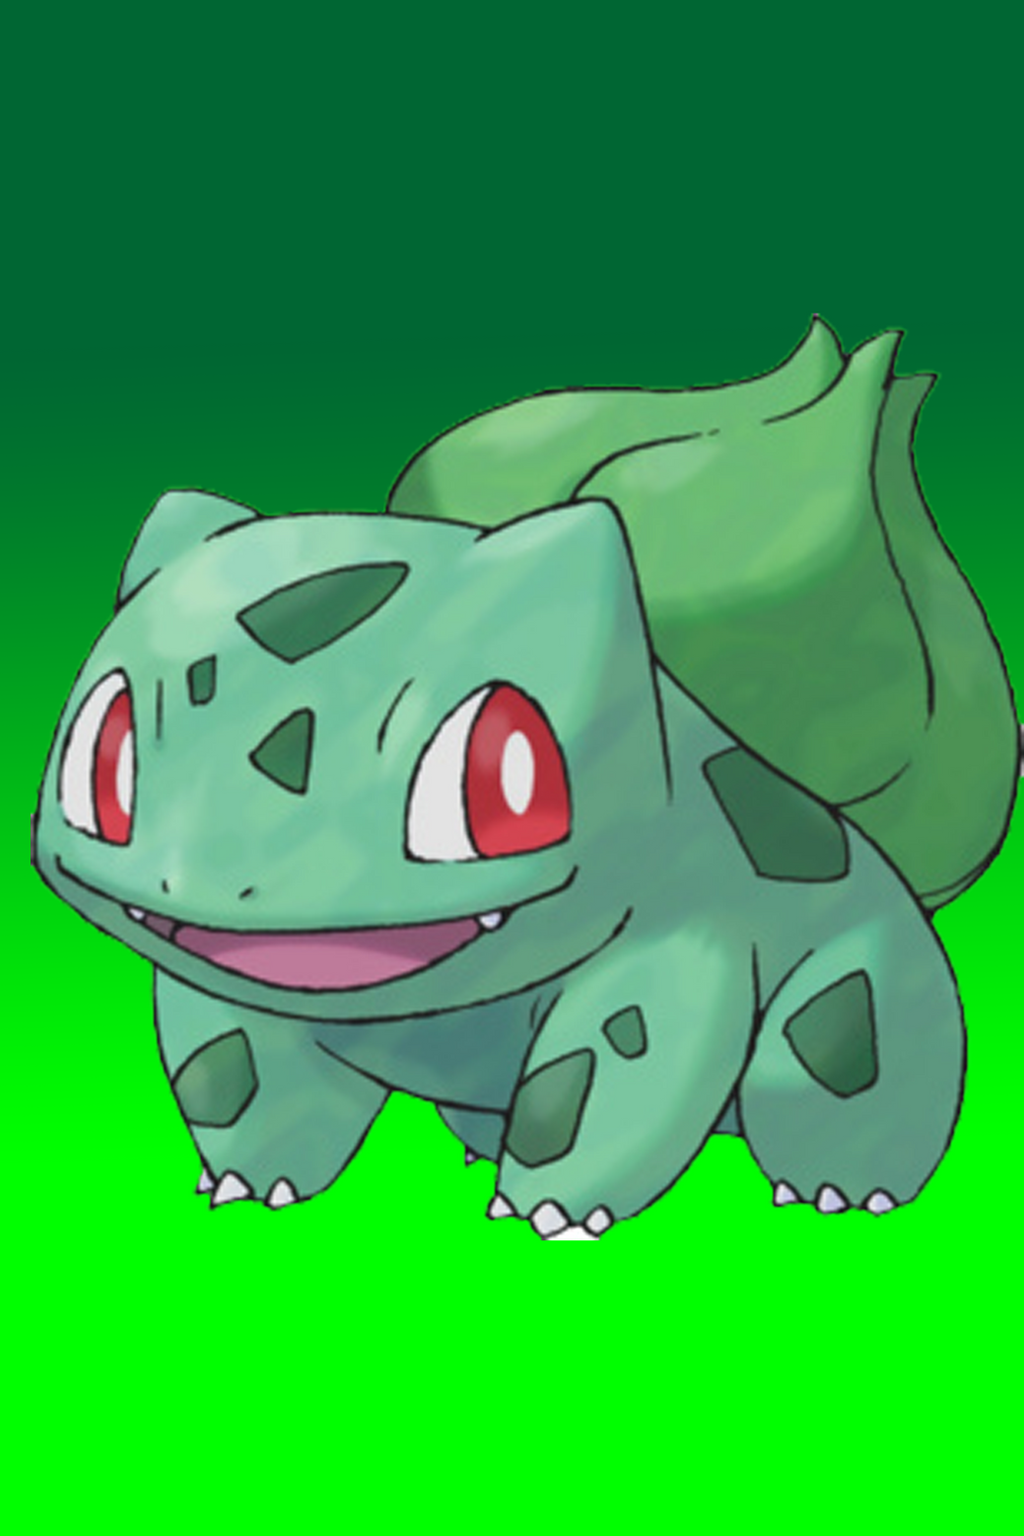 bulbasaur evolution wallpaper images - photo #31